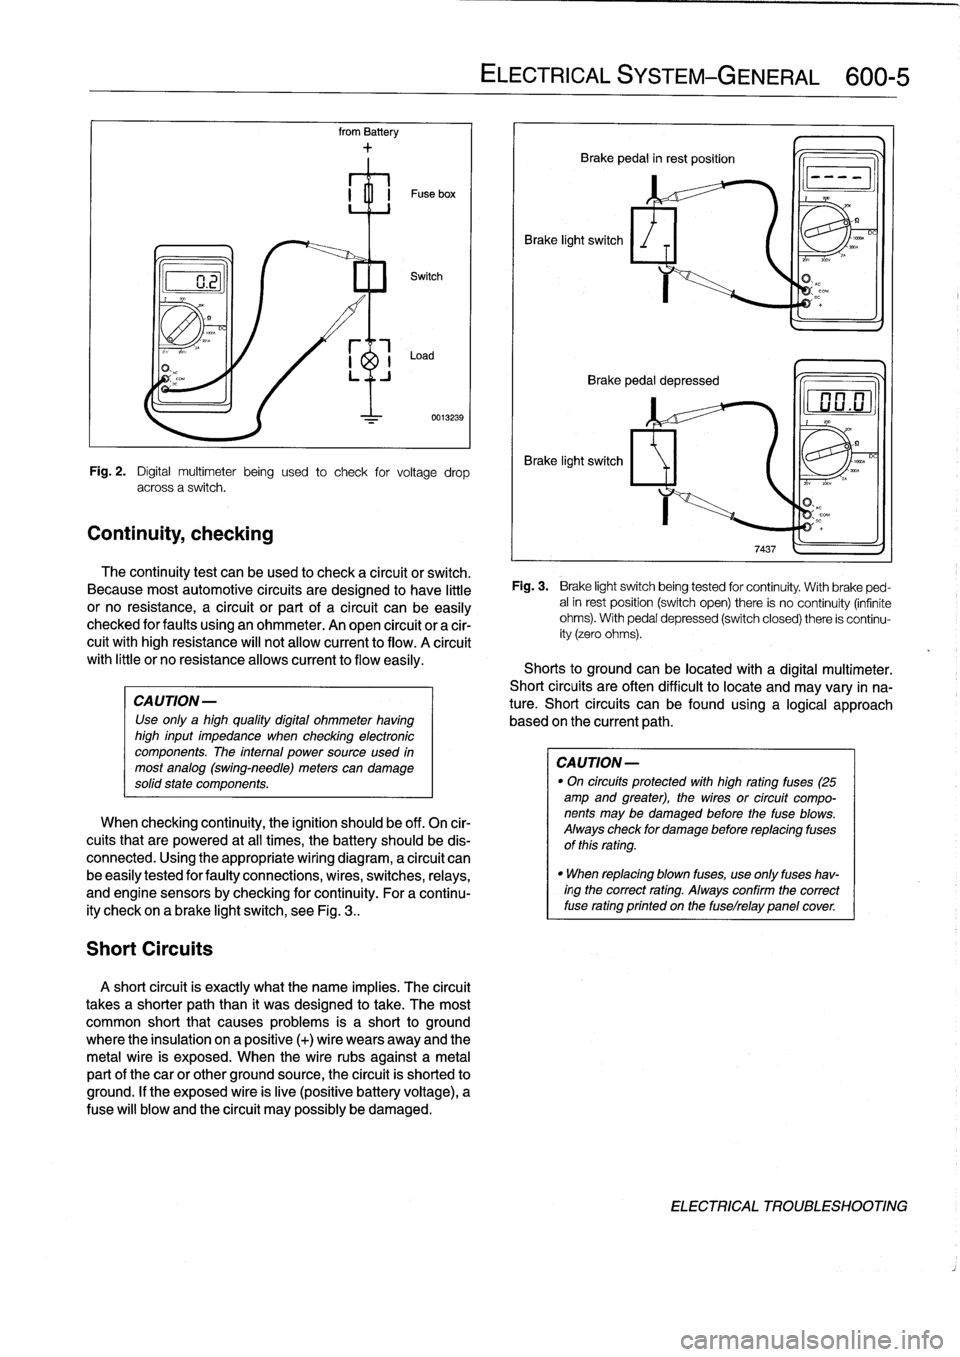 BMW 328i 1997 E36 Workshop Manual (759 Pages), Page 390